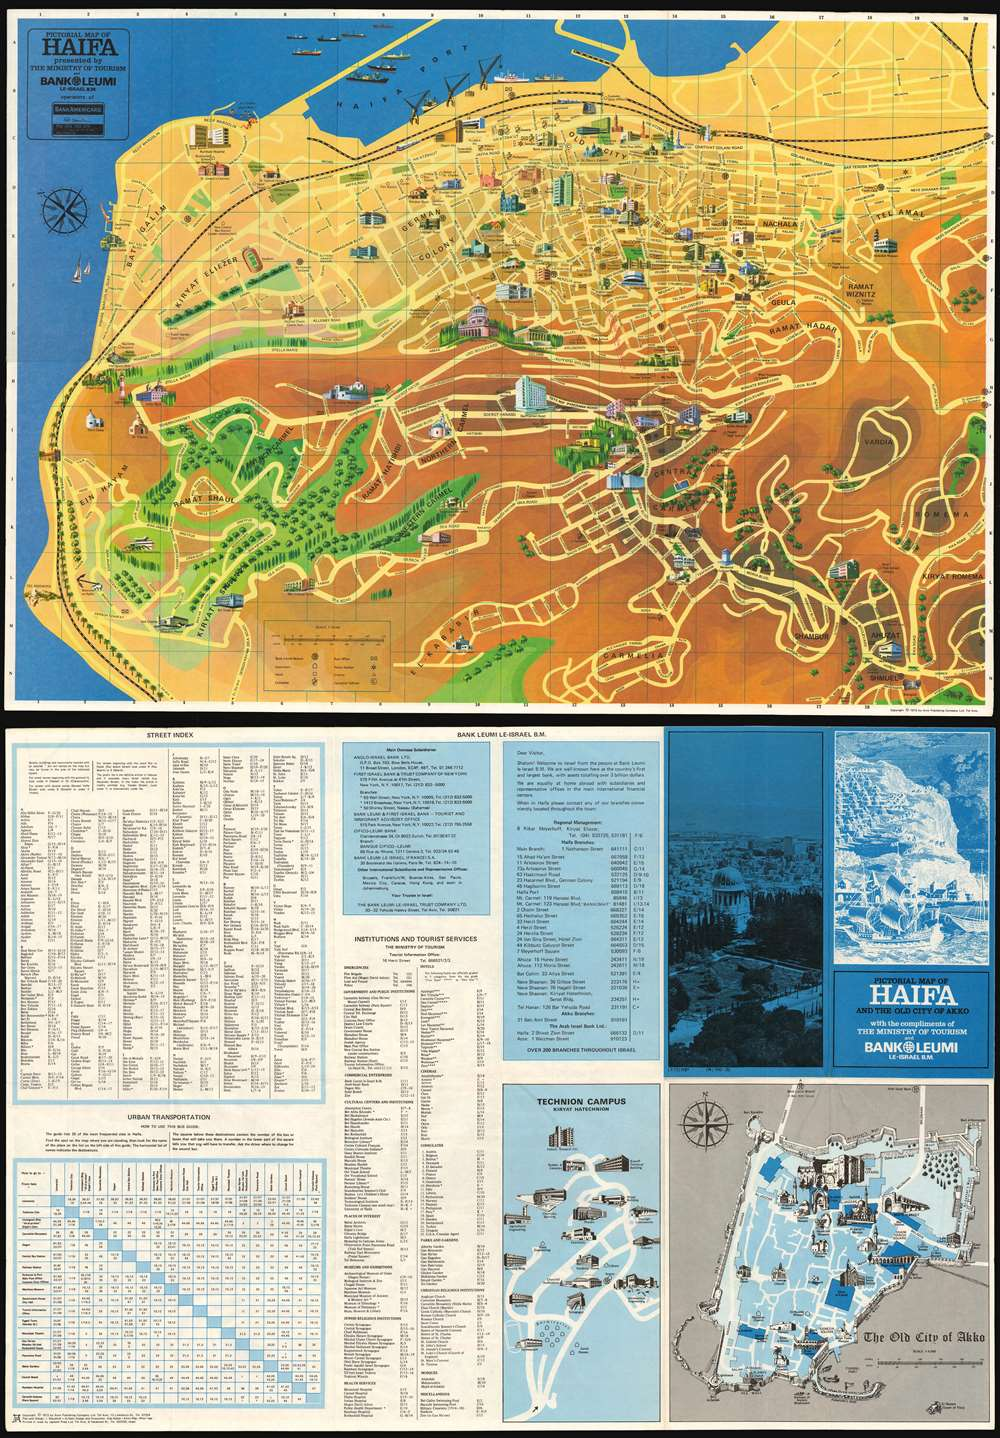 1972 Amir Publishing Co. Pictorial Map of Haifa